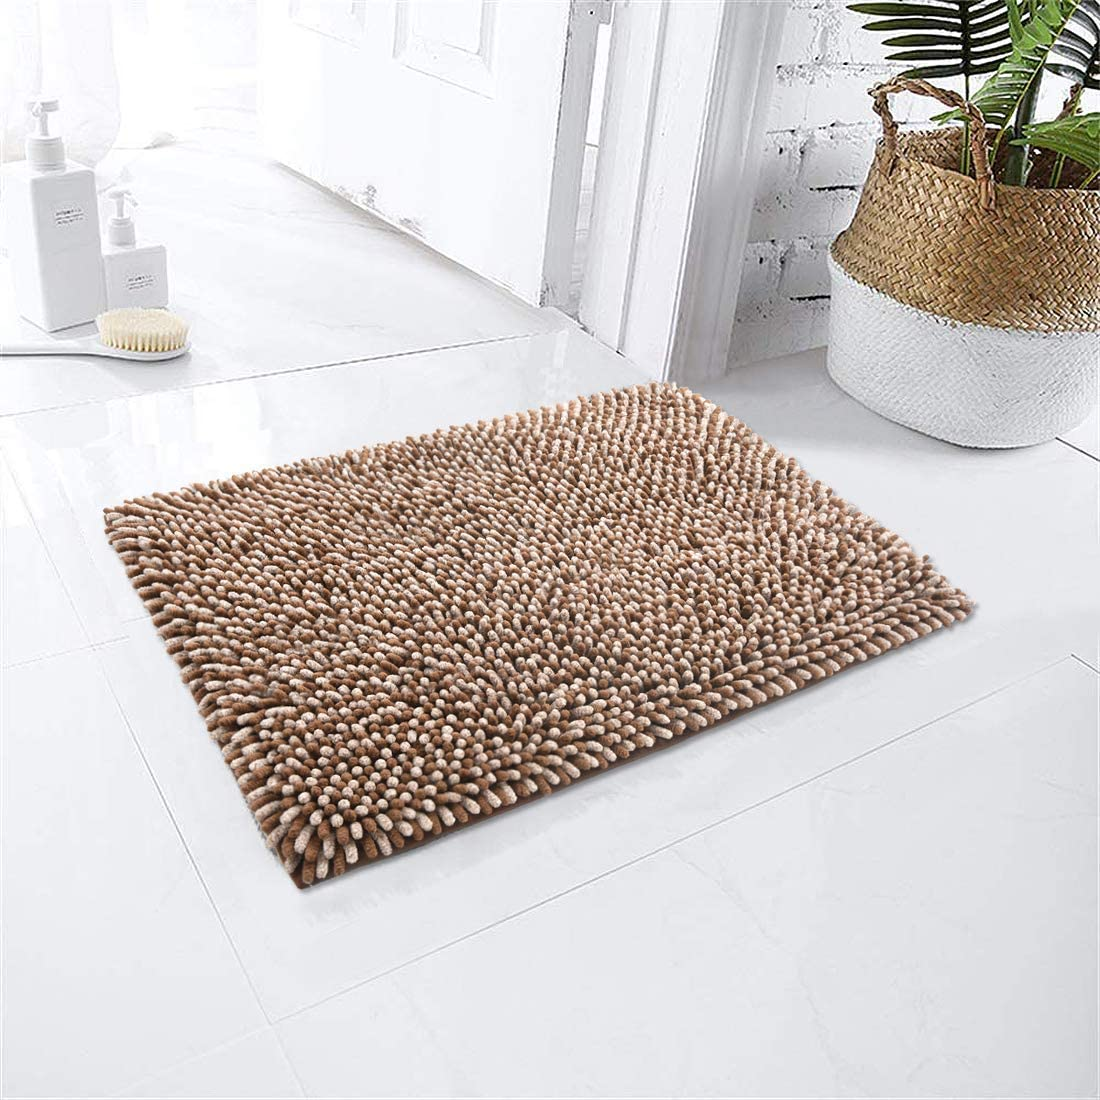 Bathroom Rug COSY HOMEER Free shipping on posting reviews 17x24 Inch Made 100% of Polye Rugs Bath 5% OFF